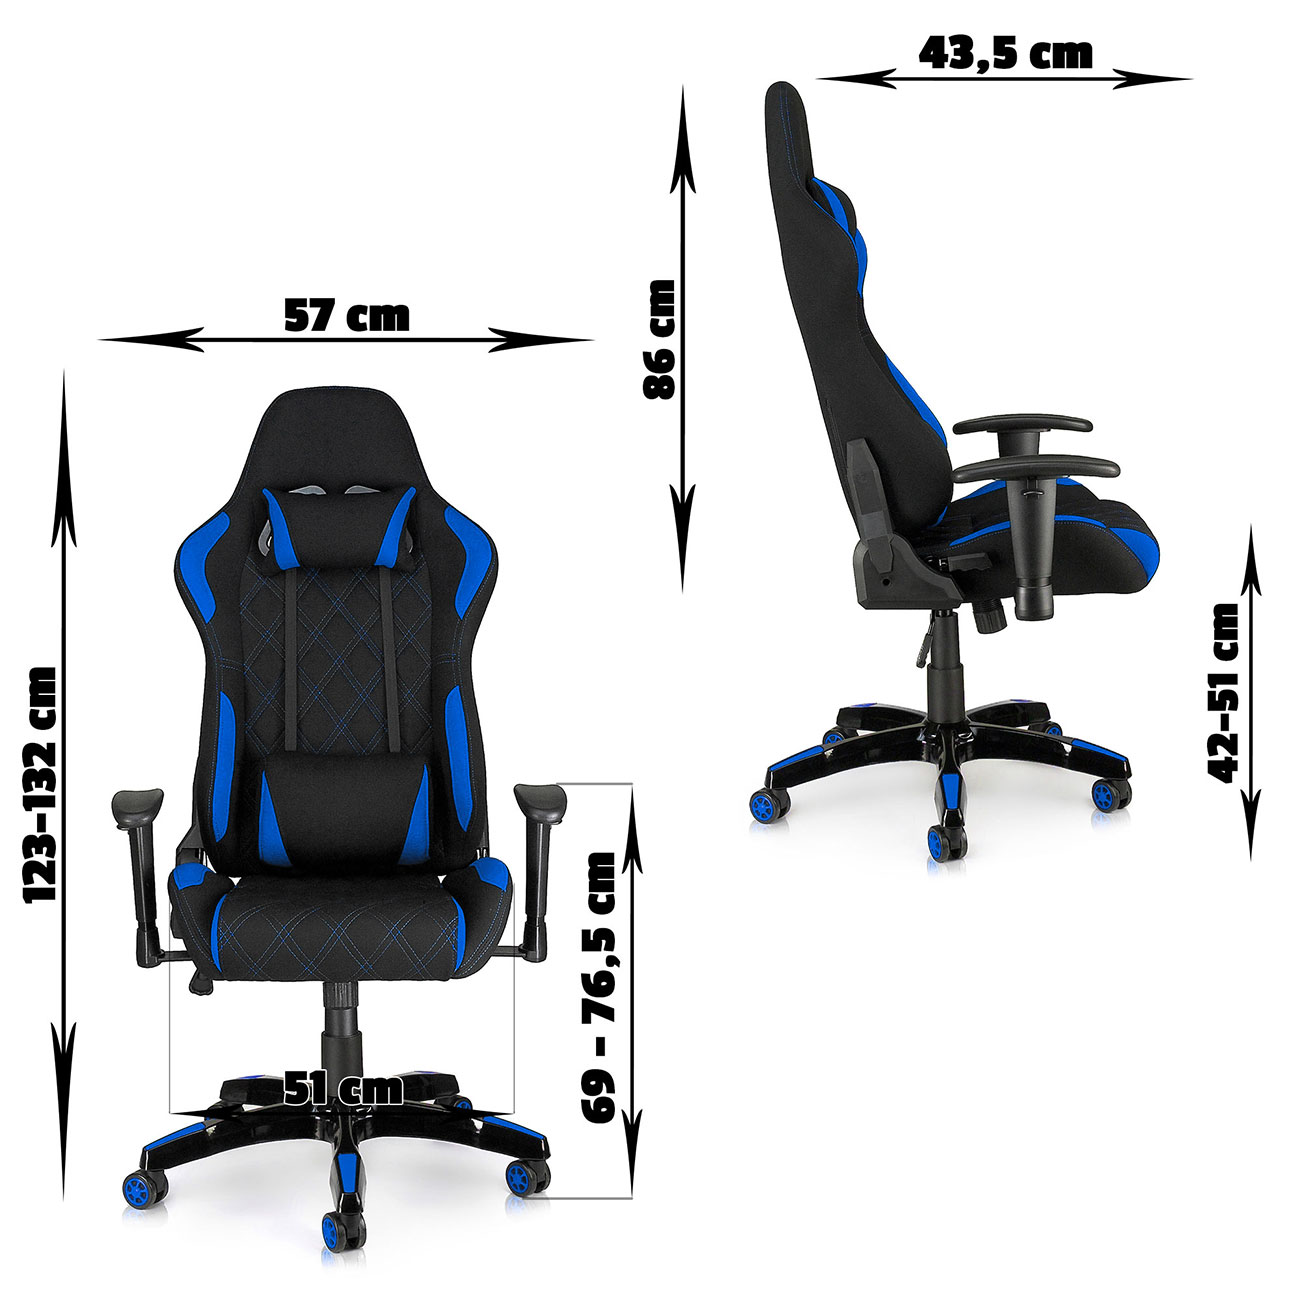 Chaise bureau fauteuil si ge racing gamer sport ordinateur for Chaise x racer